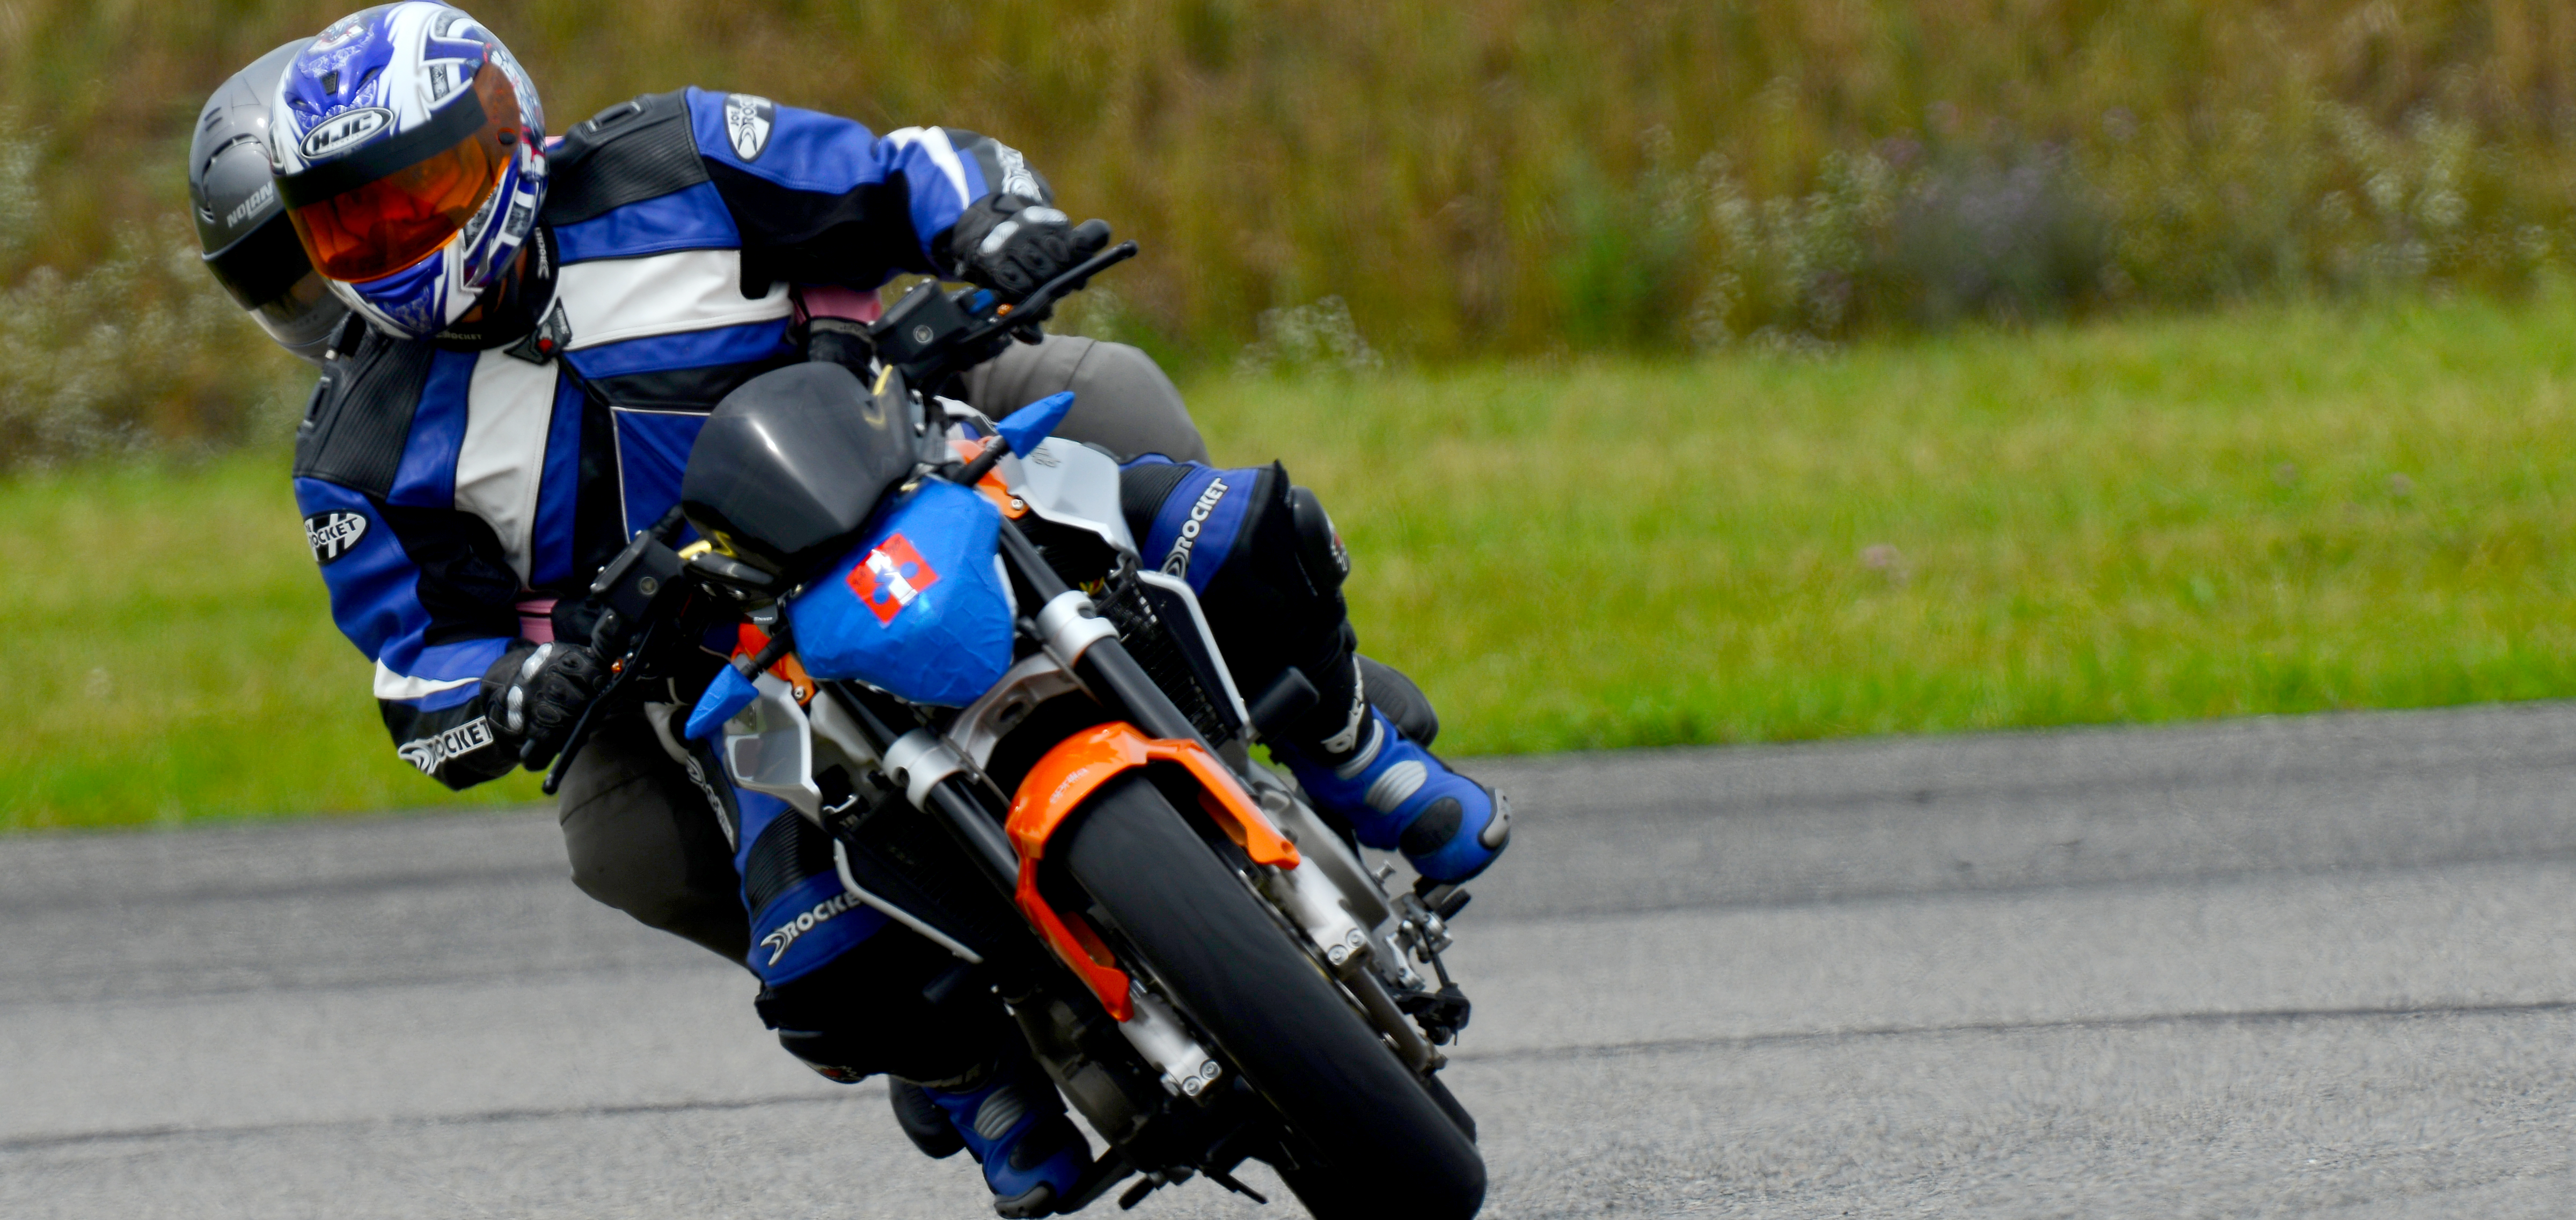 Track Day: An Experienced Perspective